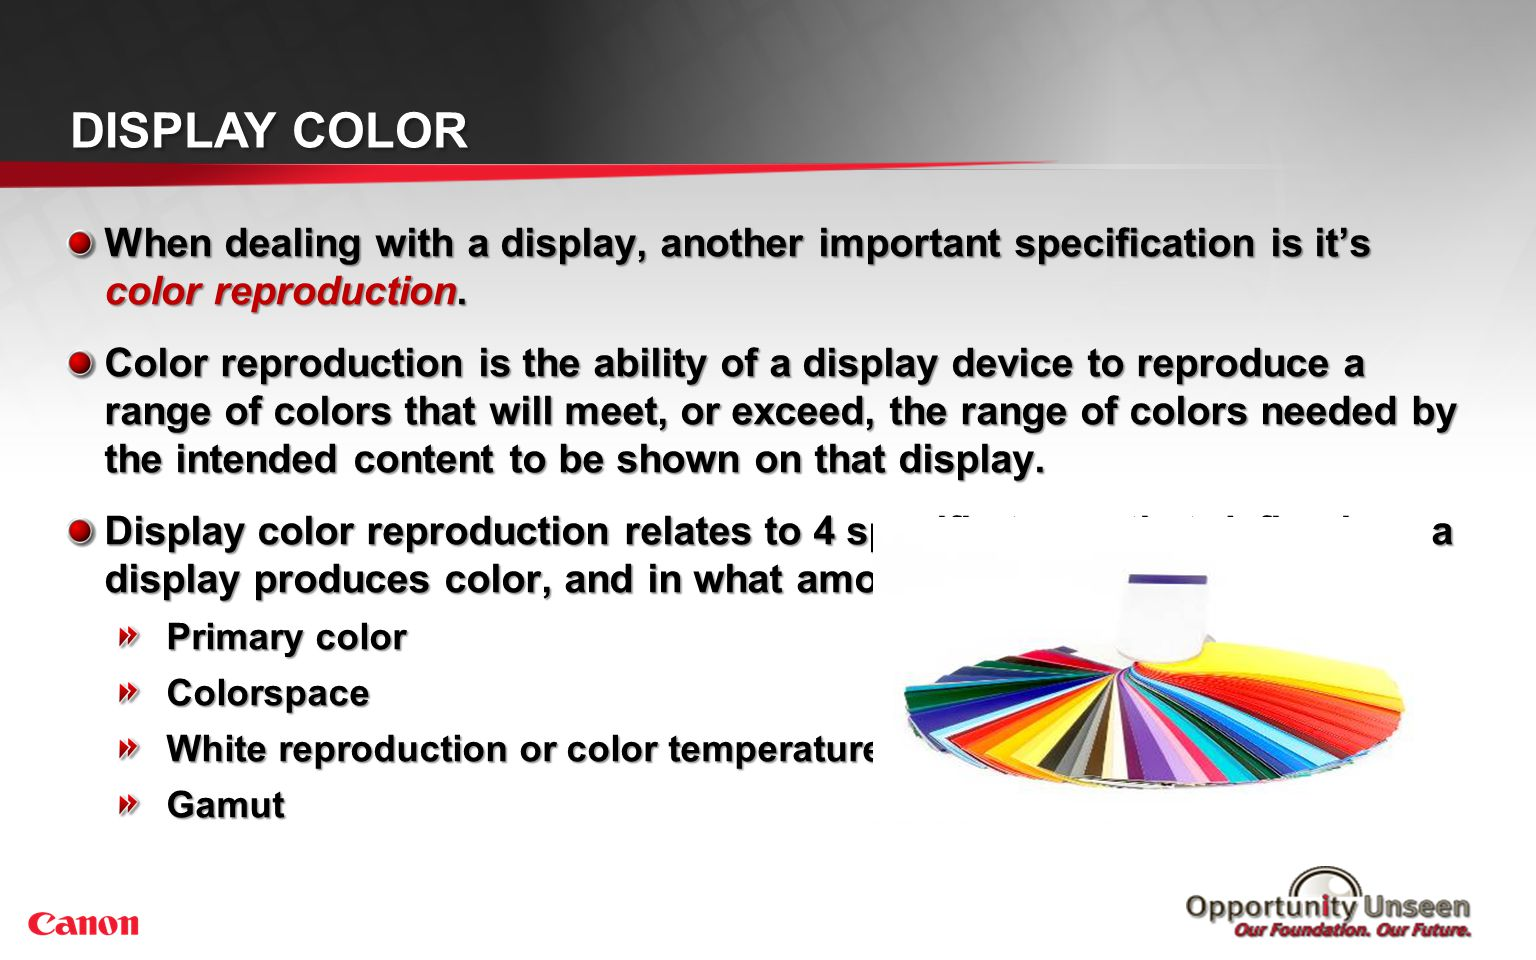 When dealing with a display, another important specification is its color reproduction. Color reproduction is the ability of a display device to repro